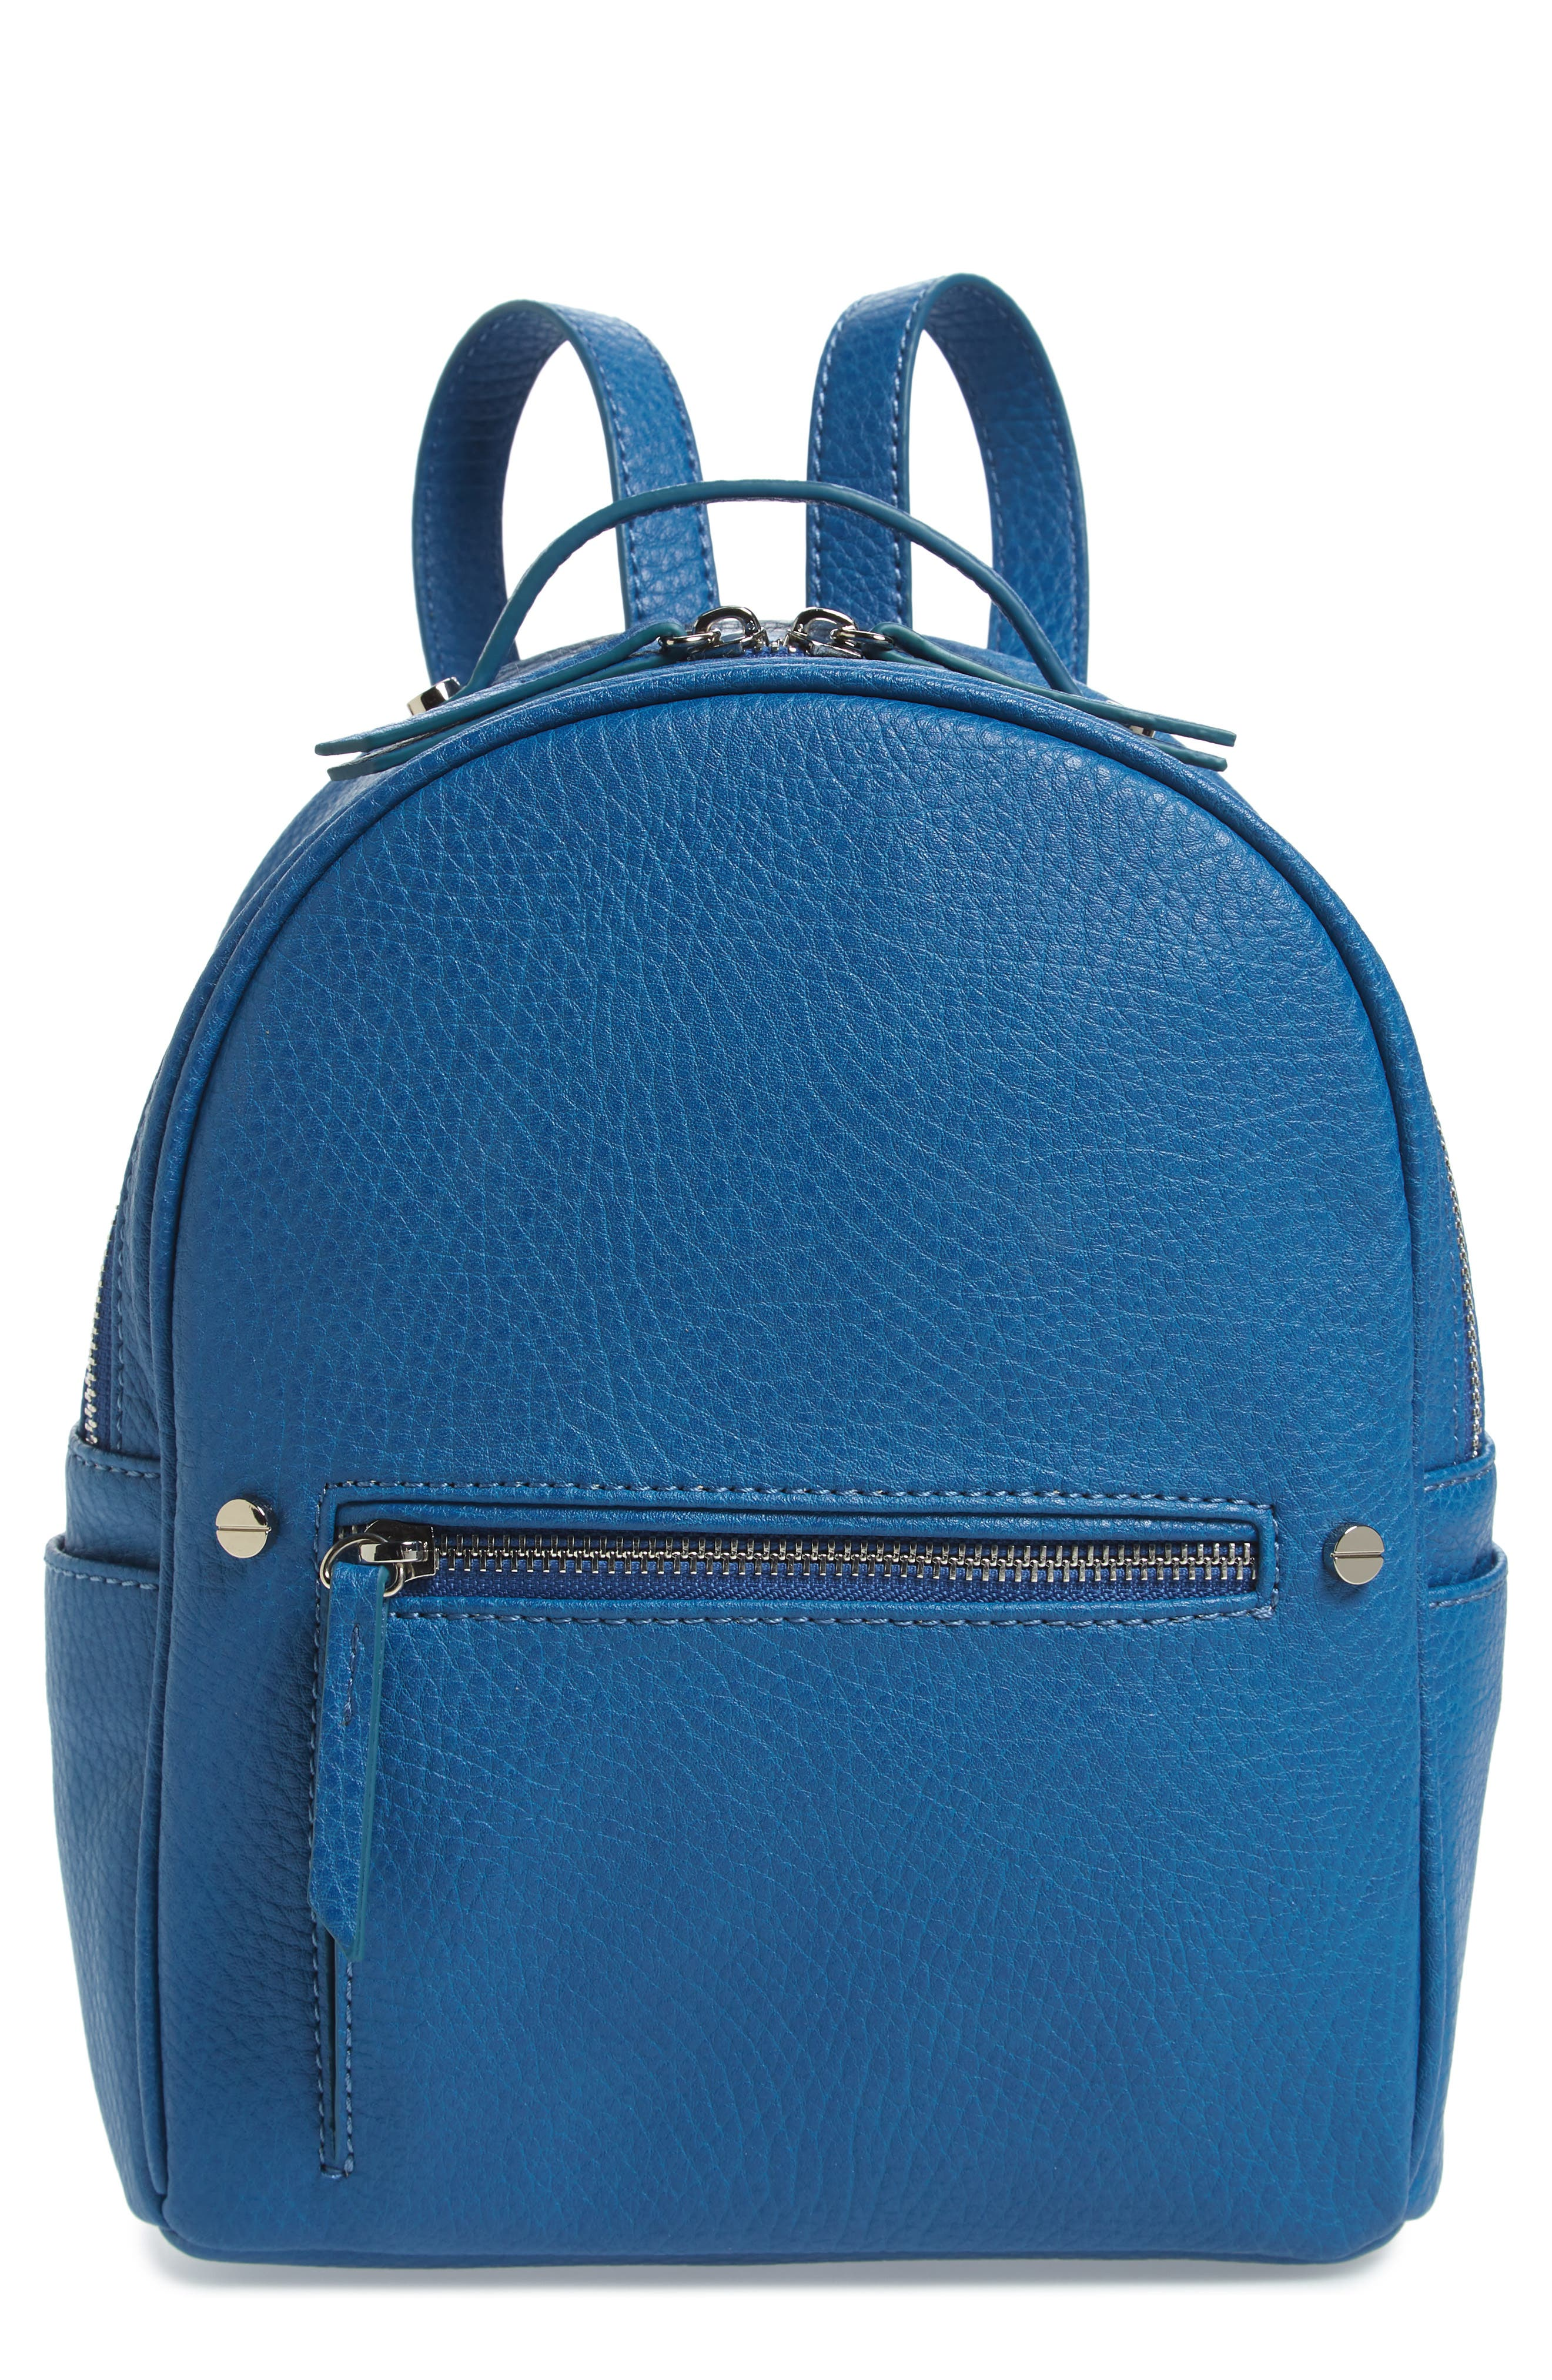 Mali + Lili Hannah Vegan Leather Backpack,                         Main,                         color, FRENCH BLUE